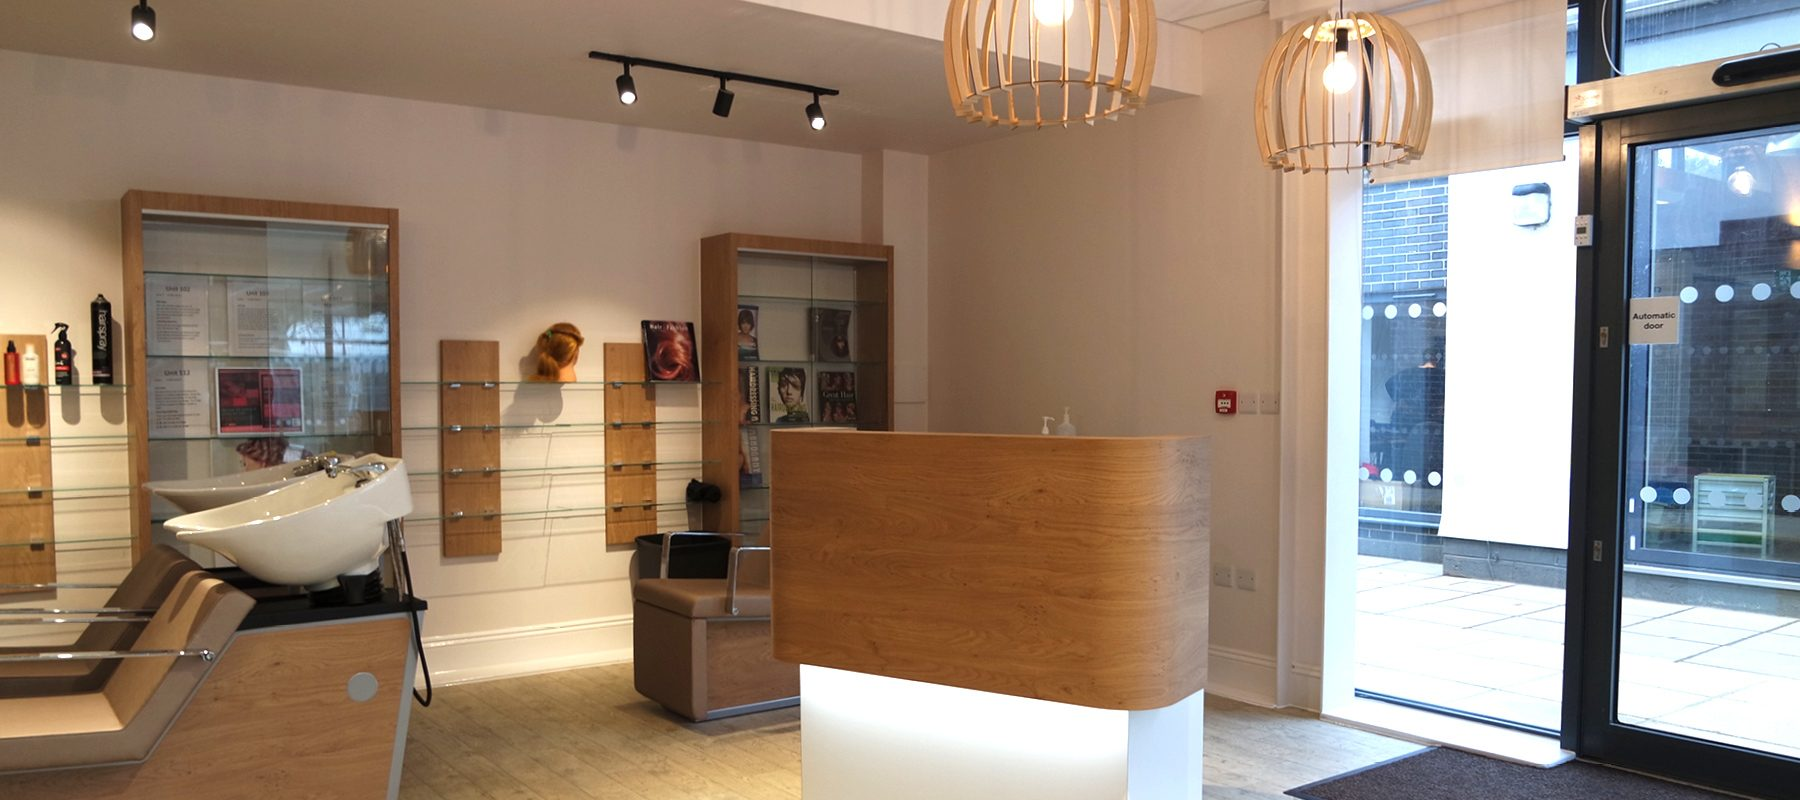 Salon Inspiration Combe Pafford Fruition Hair Salon And Beauty Room For Torquay